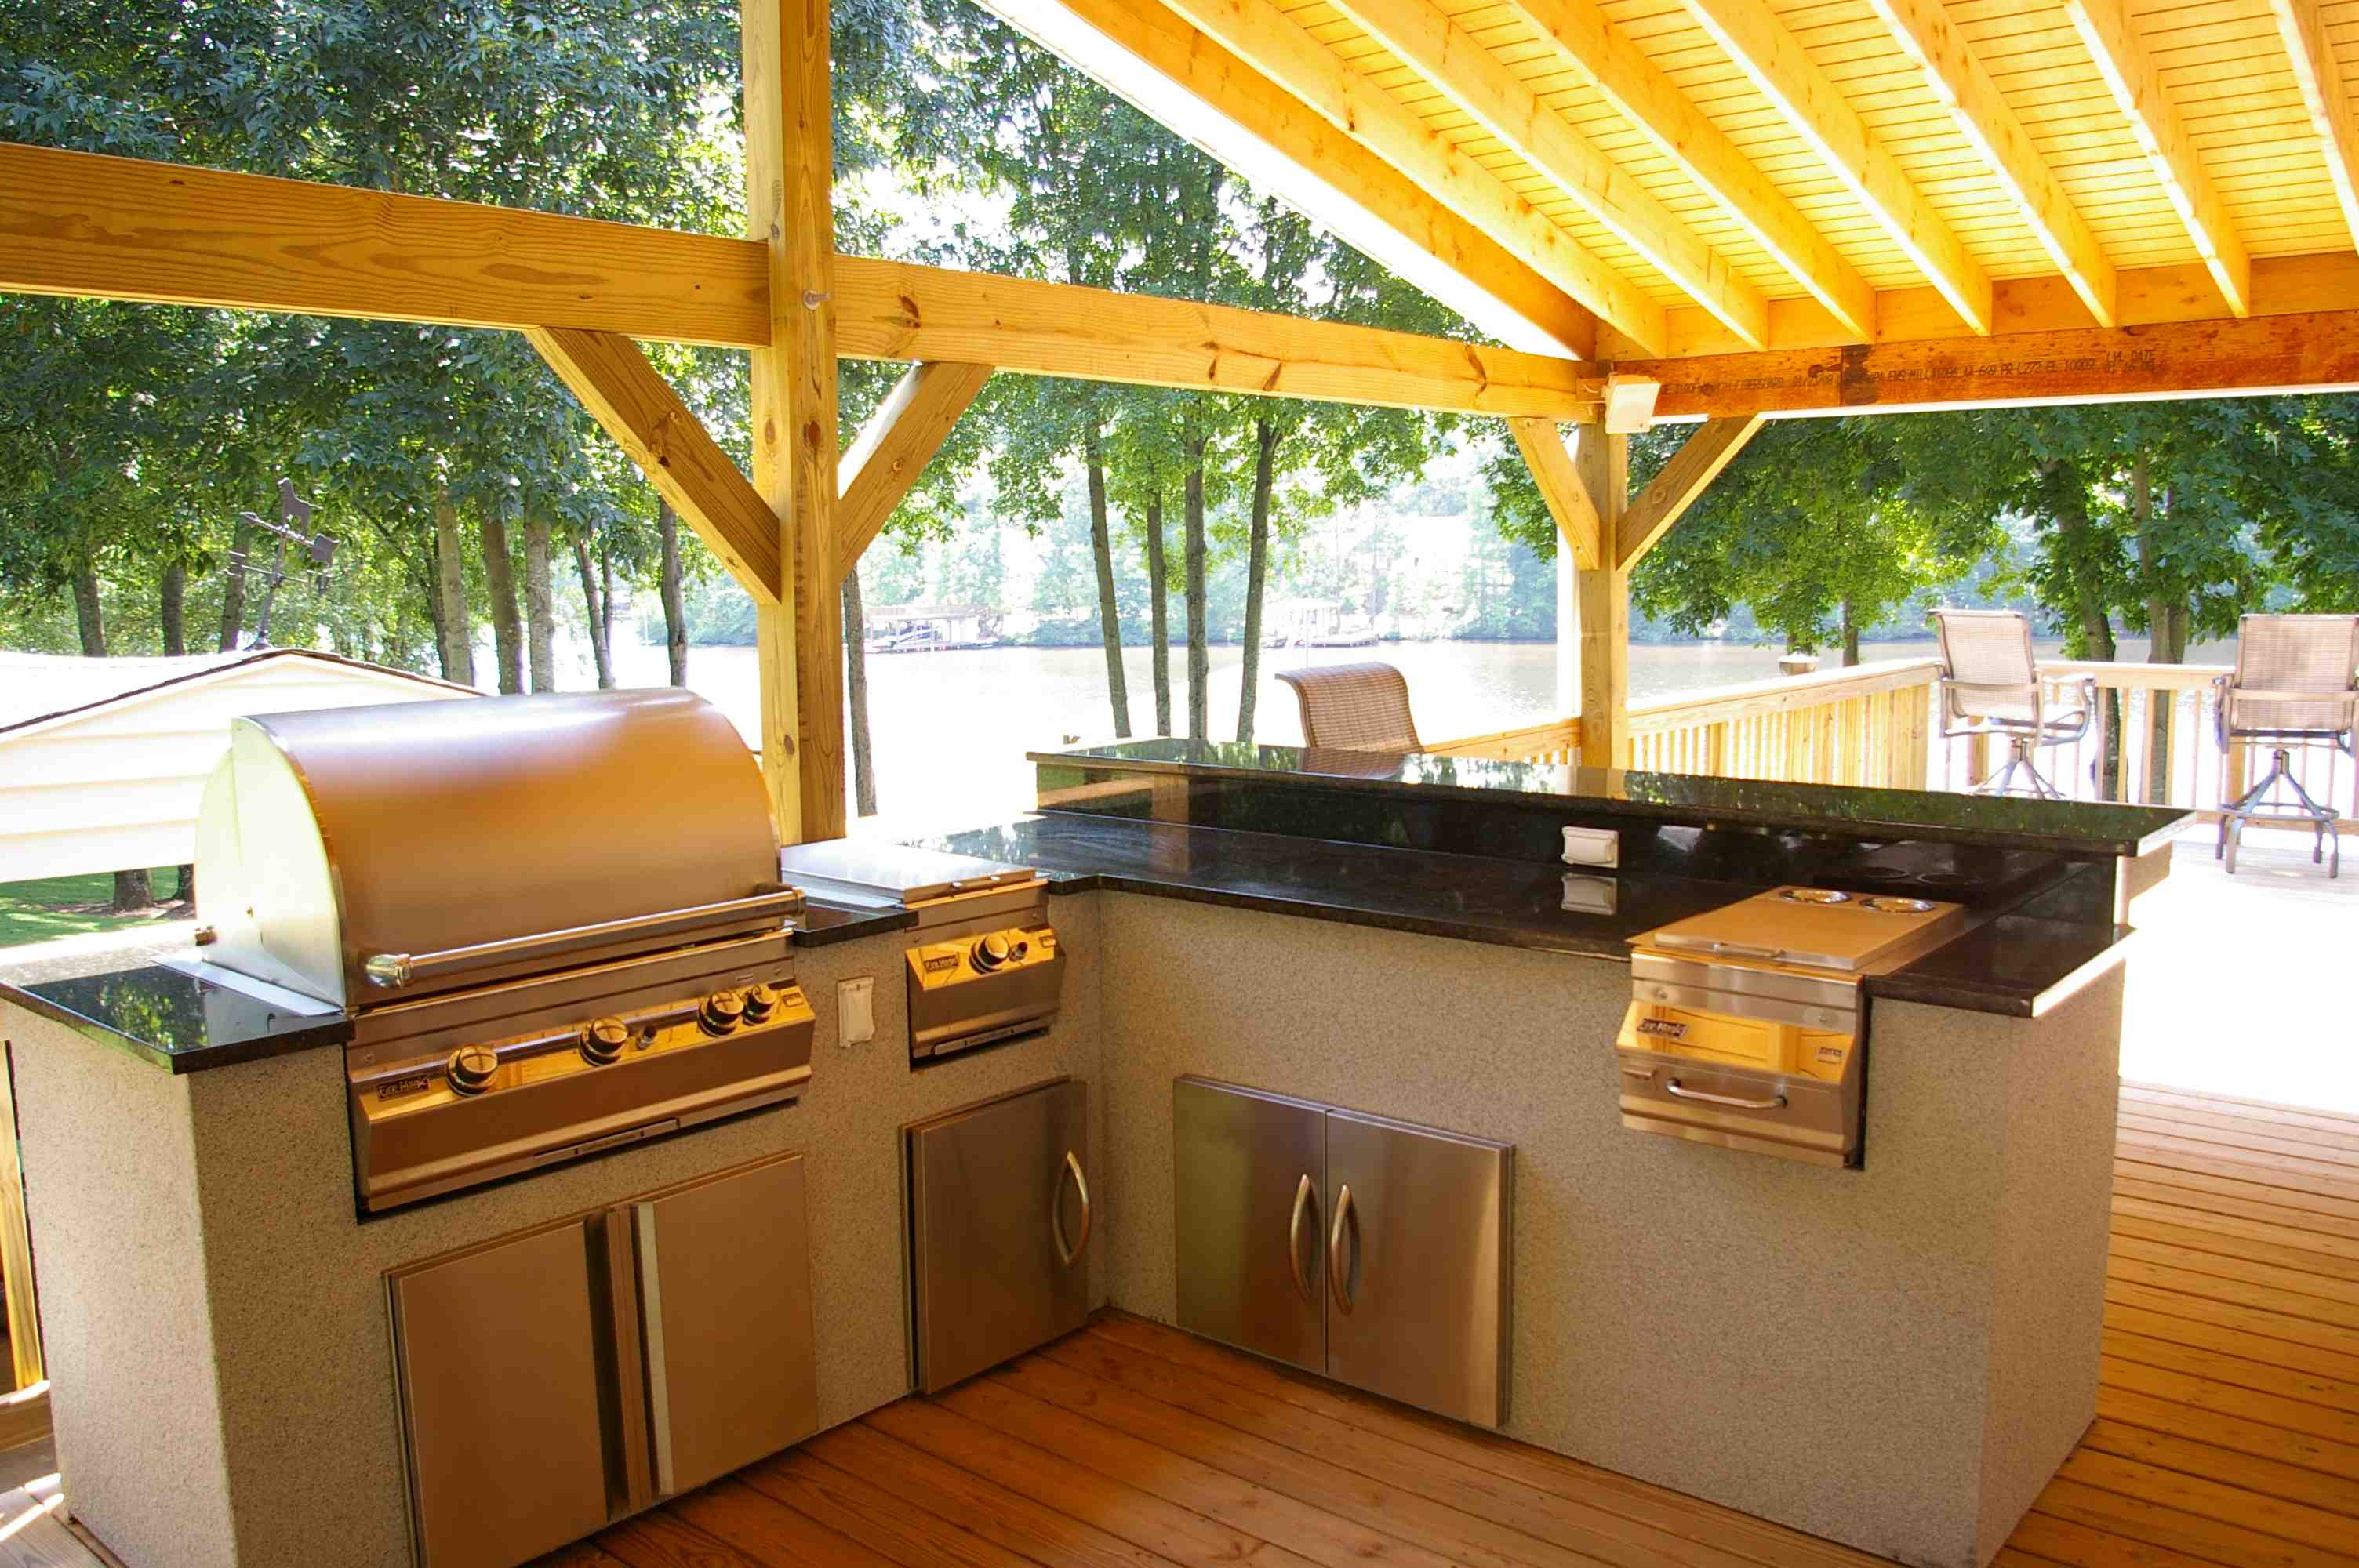 Outdoor Kitchens And Grills Naples Sarasota Tampa And Surrounding Areas